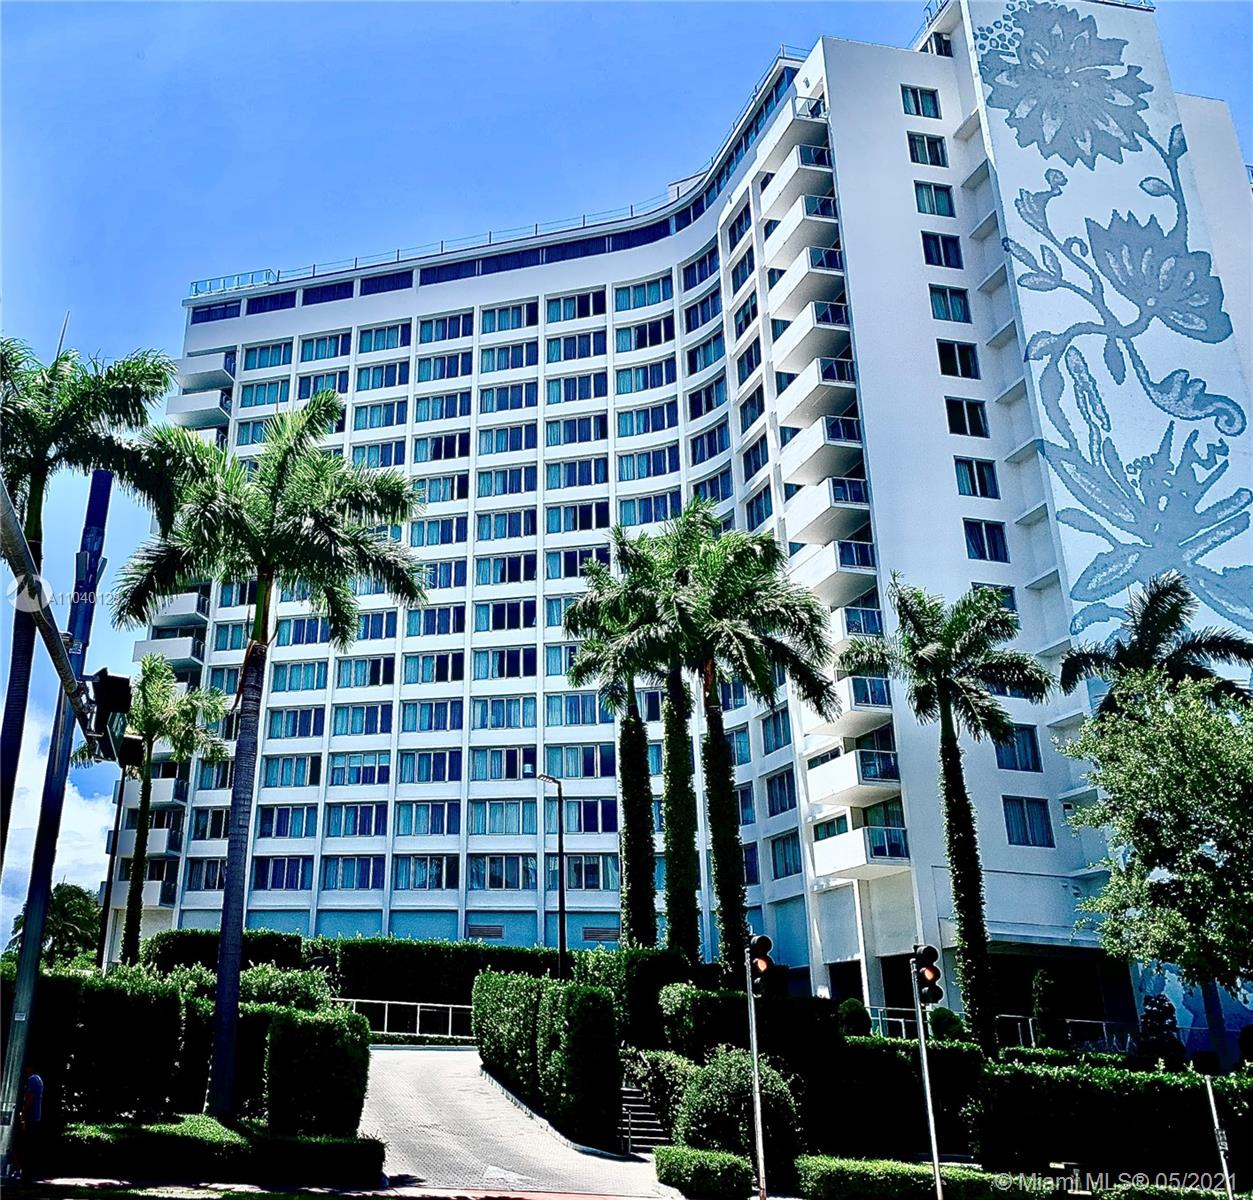 TURN KEY FURNISHED CONDO AT THE BEAUTIFUL MONDIRIAN CONDO/HOTEL . THIS SPACIOUS 1 BEDROOM 1 1/2 BATHROOM UNIT HAS TRANQUIL VIEWS OF MIAMI BEACH . THE UNIT IS CURRENTLY NOT IN ANY RENTAL PROGRAM AND OWNER AND OPEN FOR MANY CHOICES FOR NEW OWNER AIRBB ALLOWERED